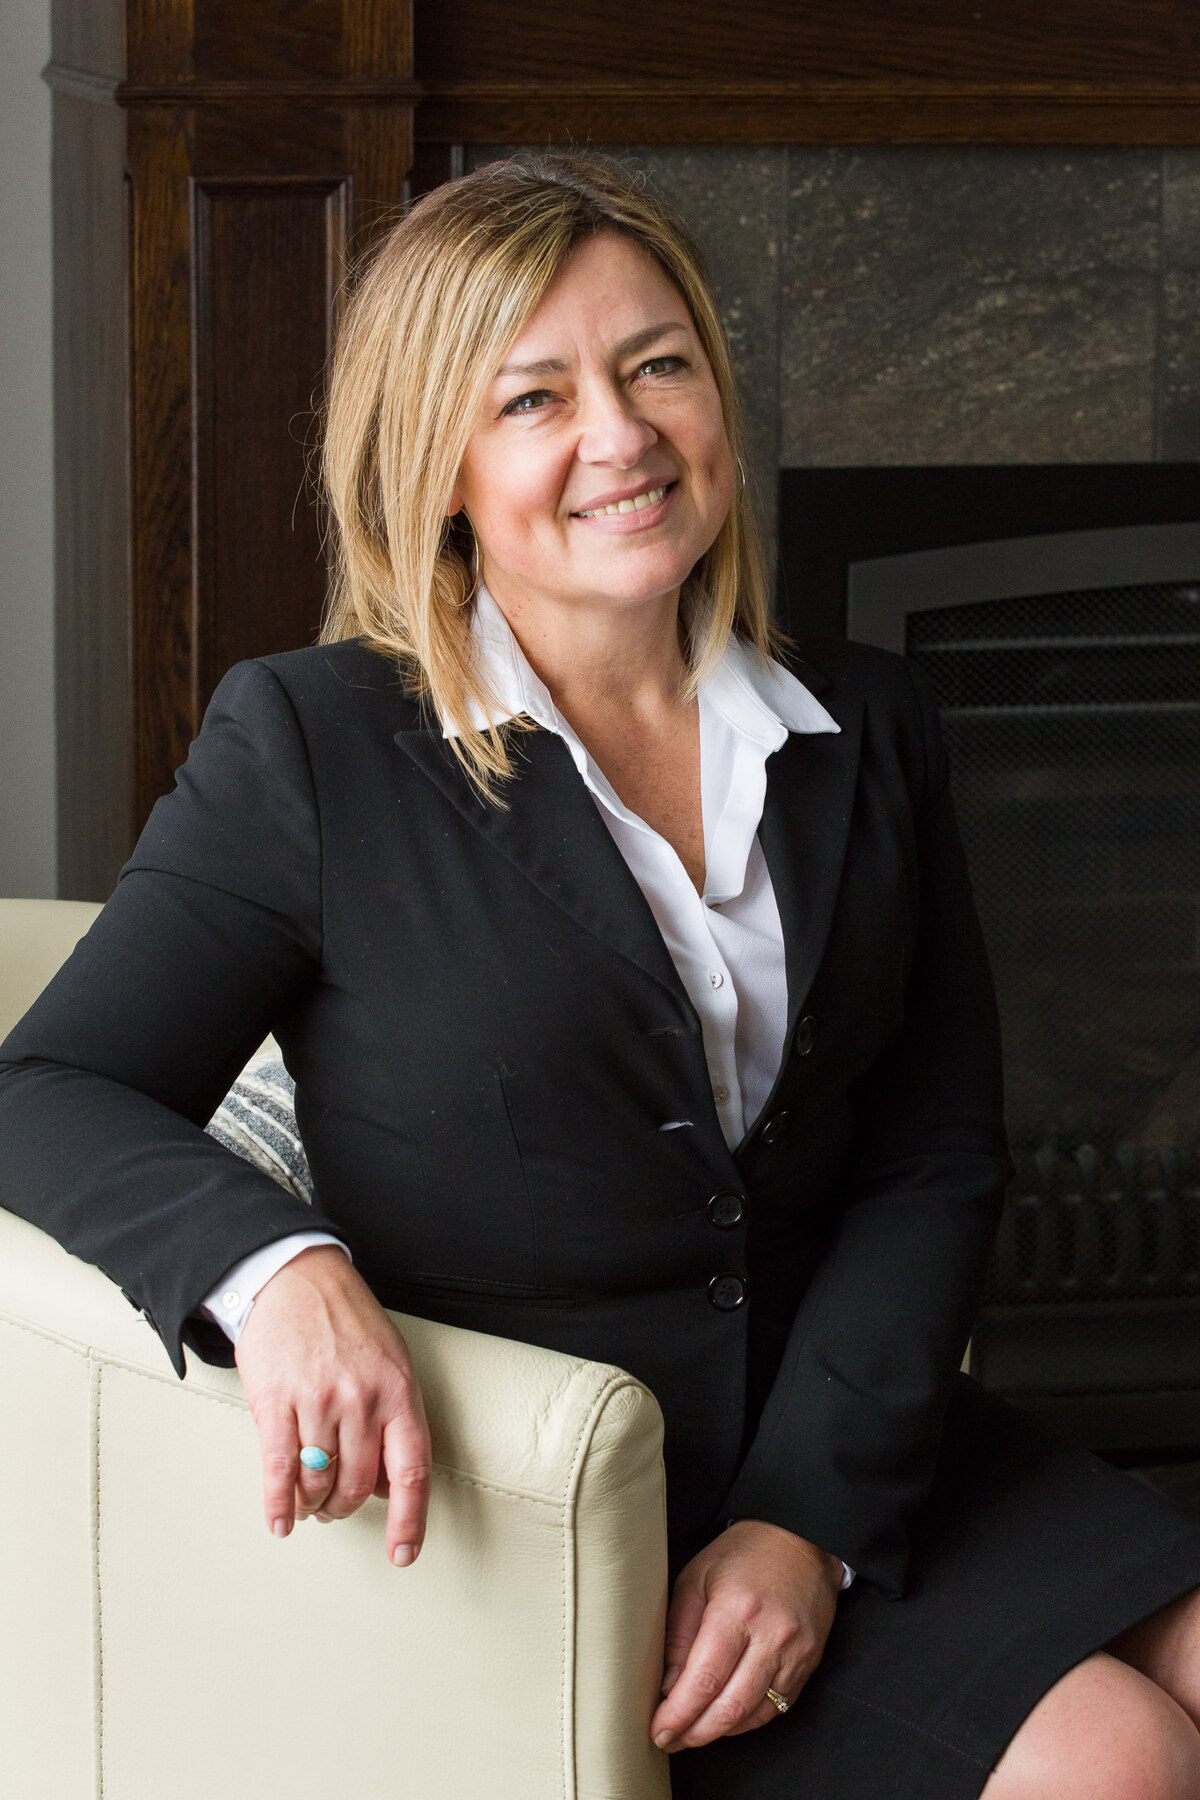 Relaxed portrait of Renfrew Real Estate Agent